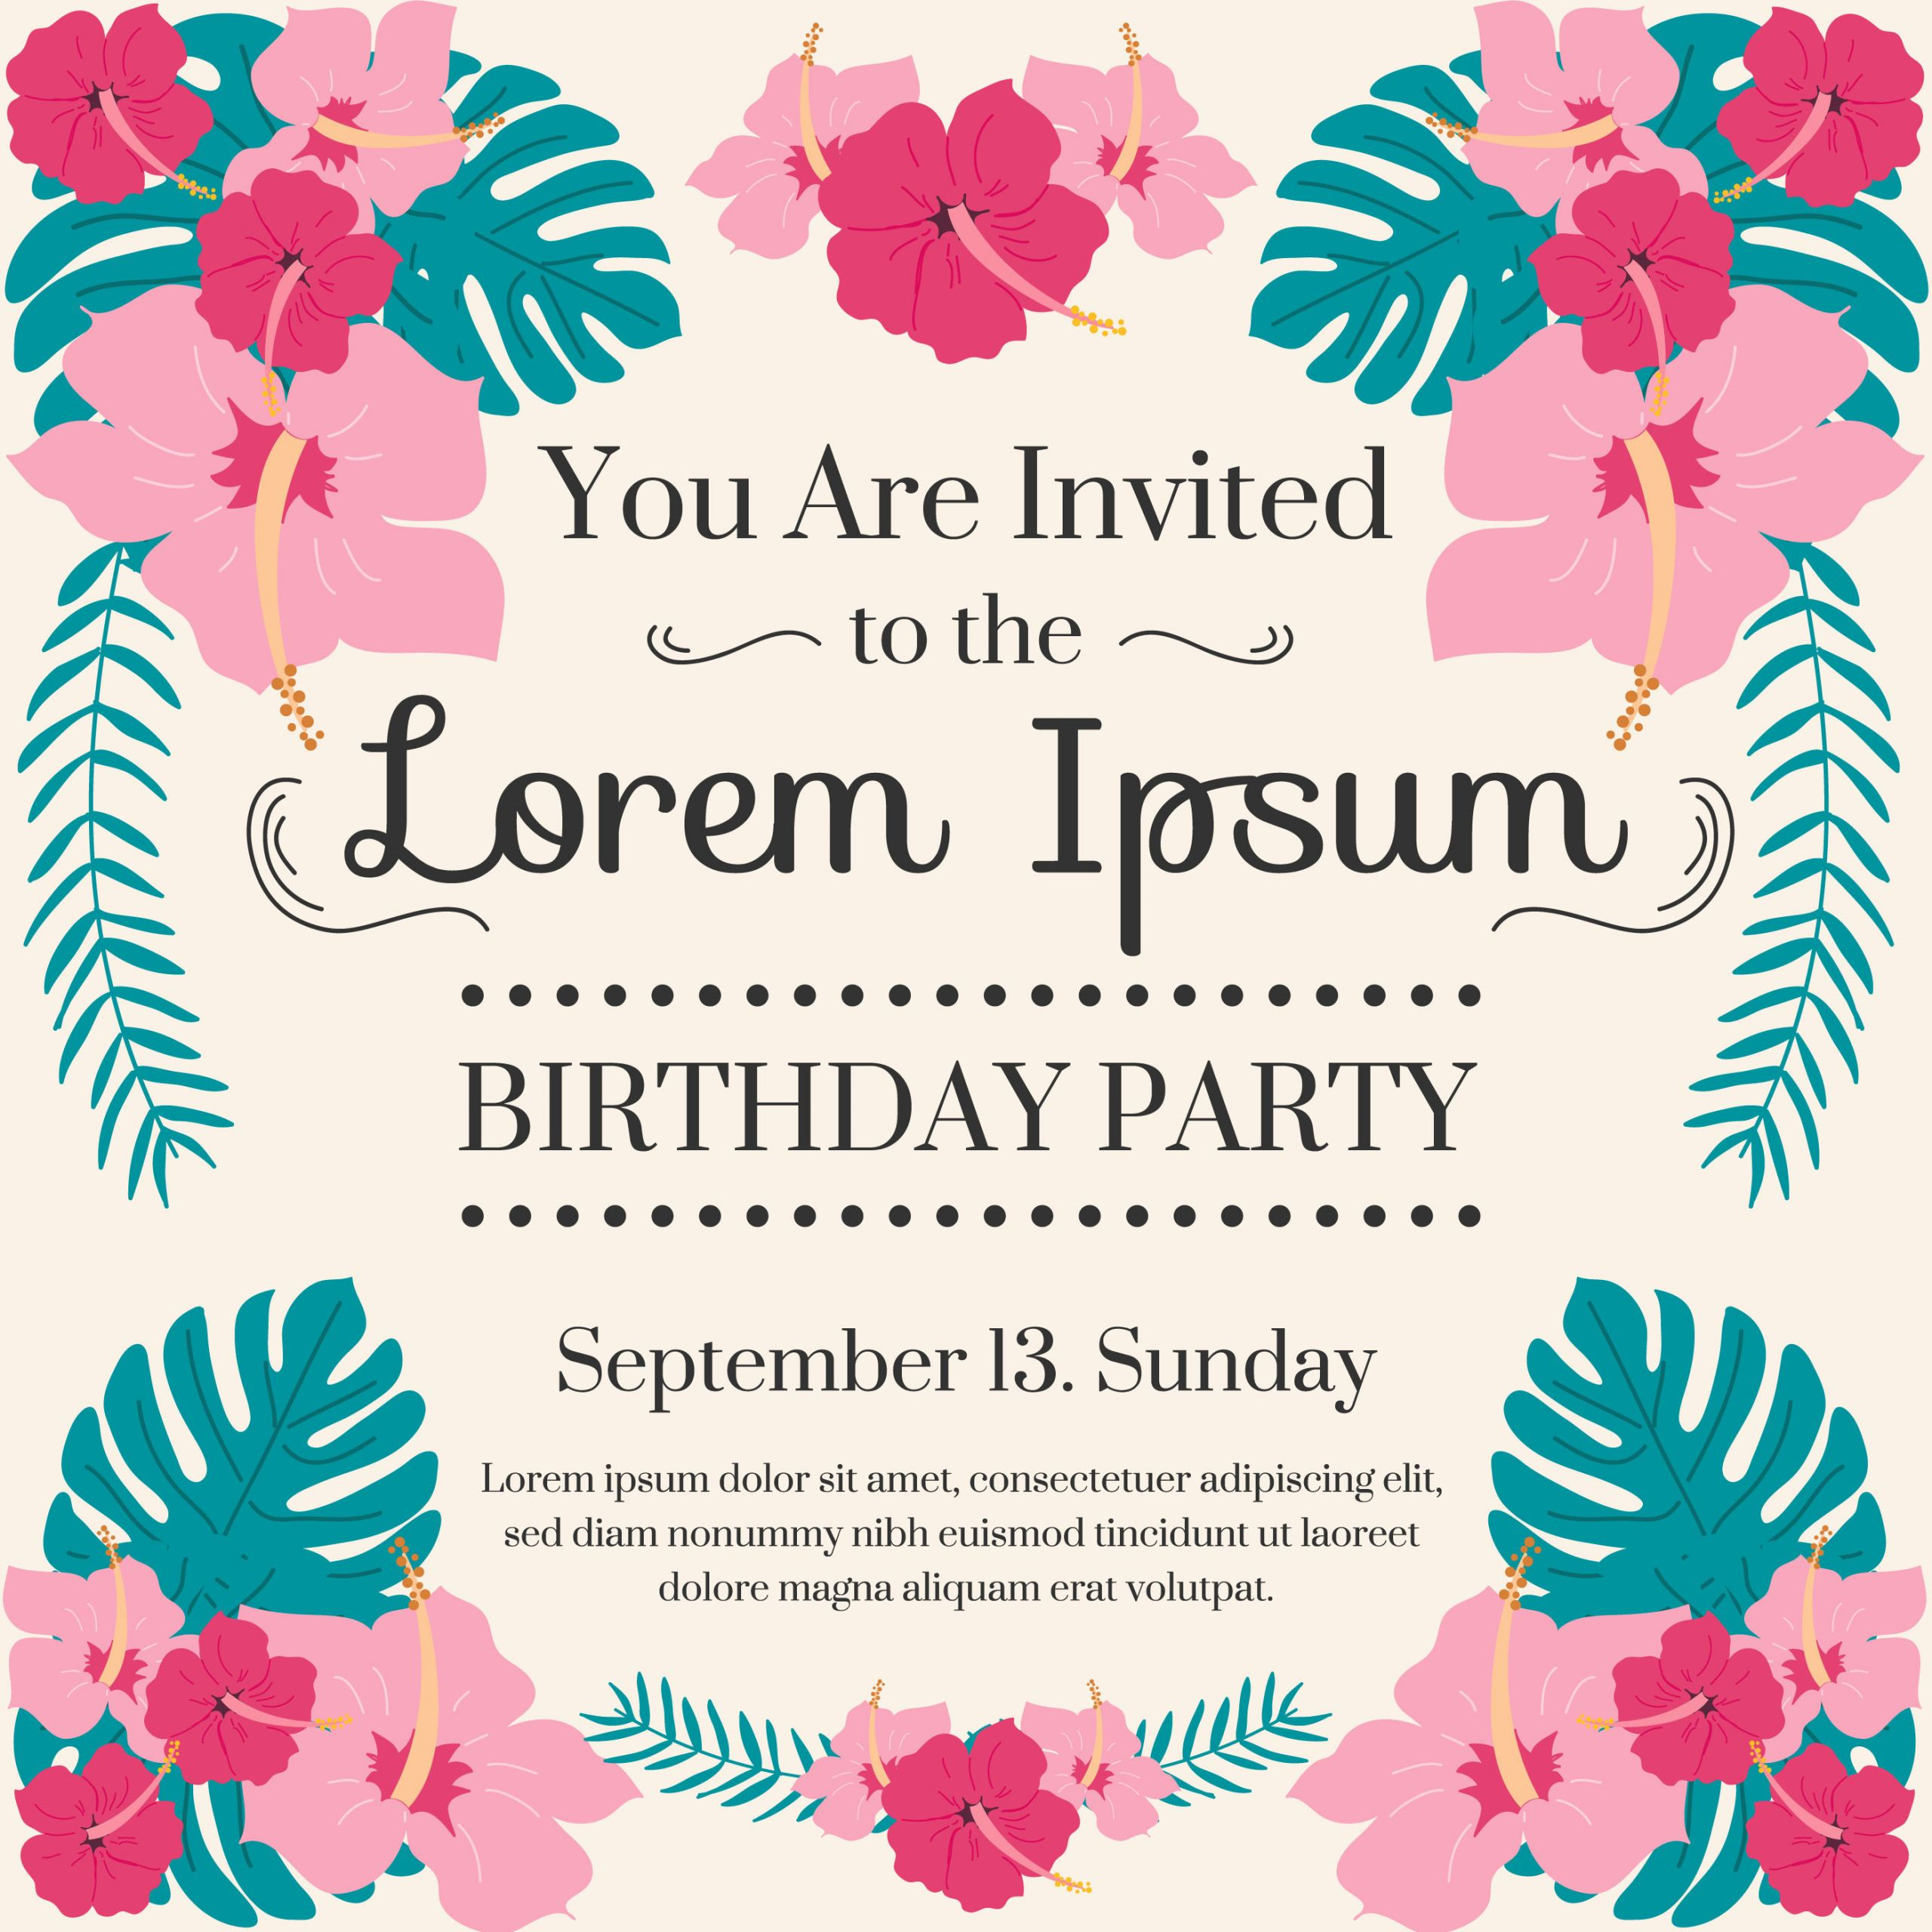 Invitation Birthday Party  Birthday Party Invitation Vector Download Free Vectors